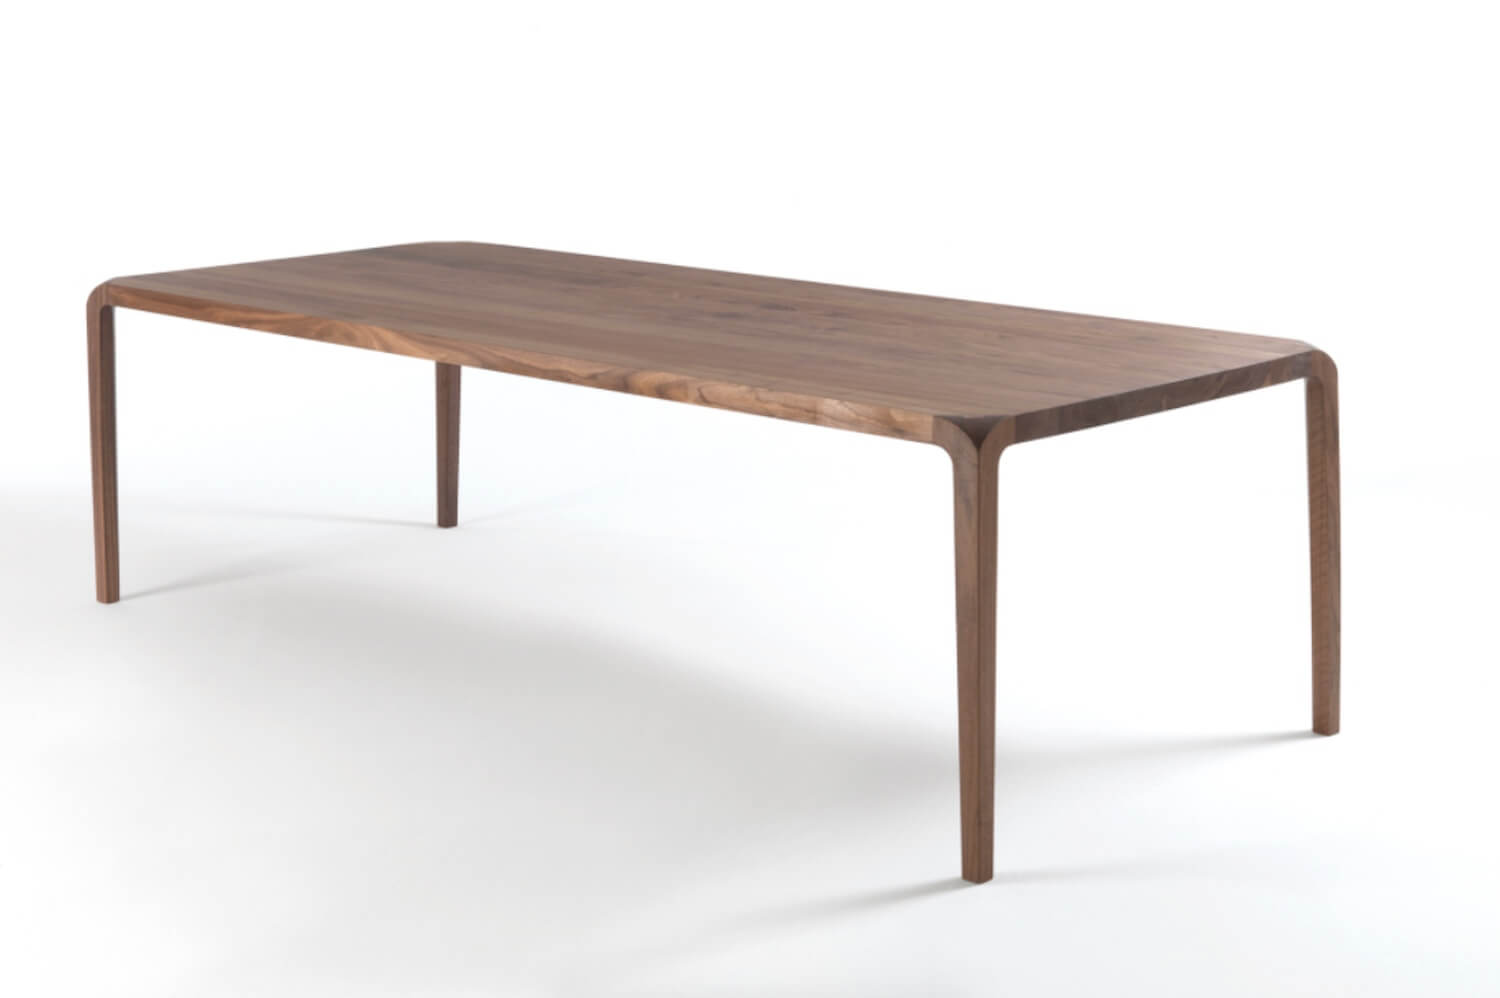 est living fanuli sleek table modern australian style